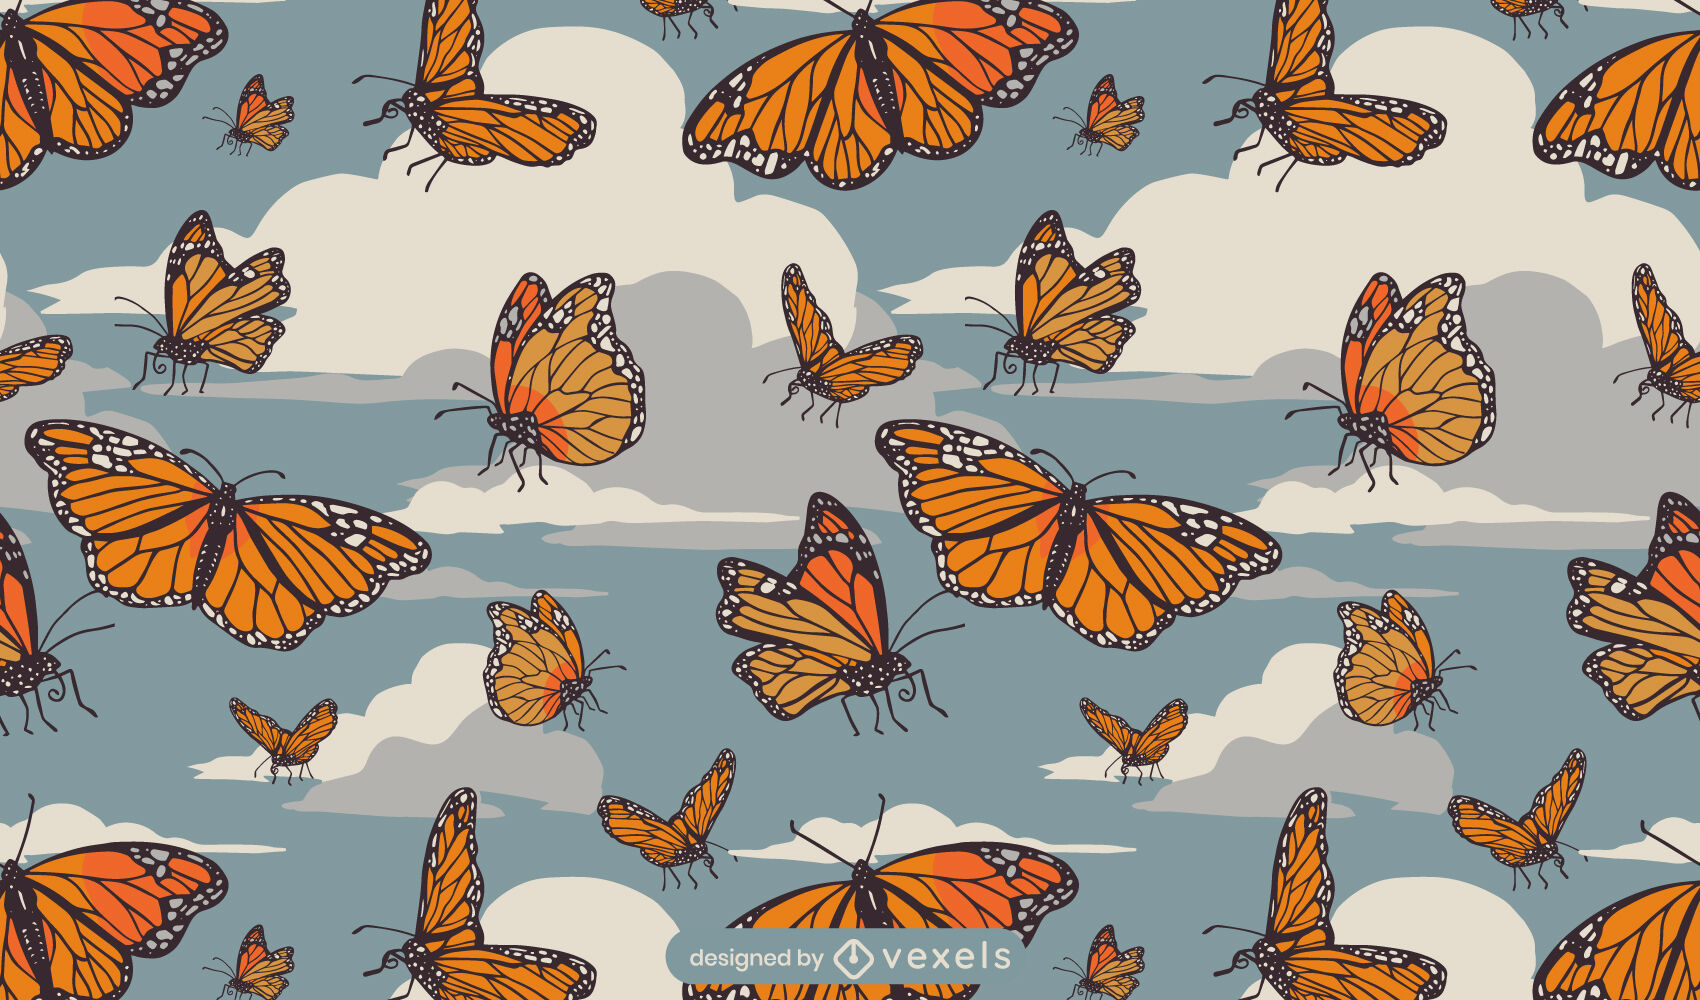 Butterfly insects flying nature pattern design